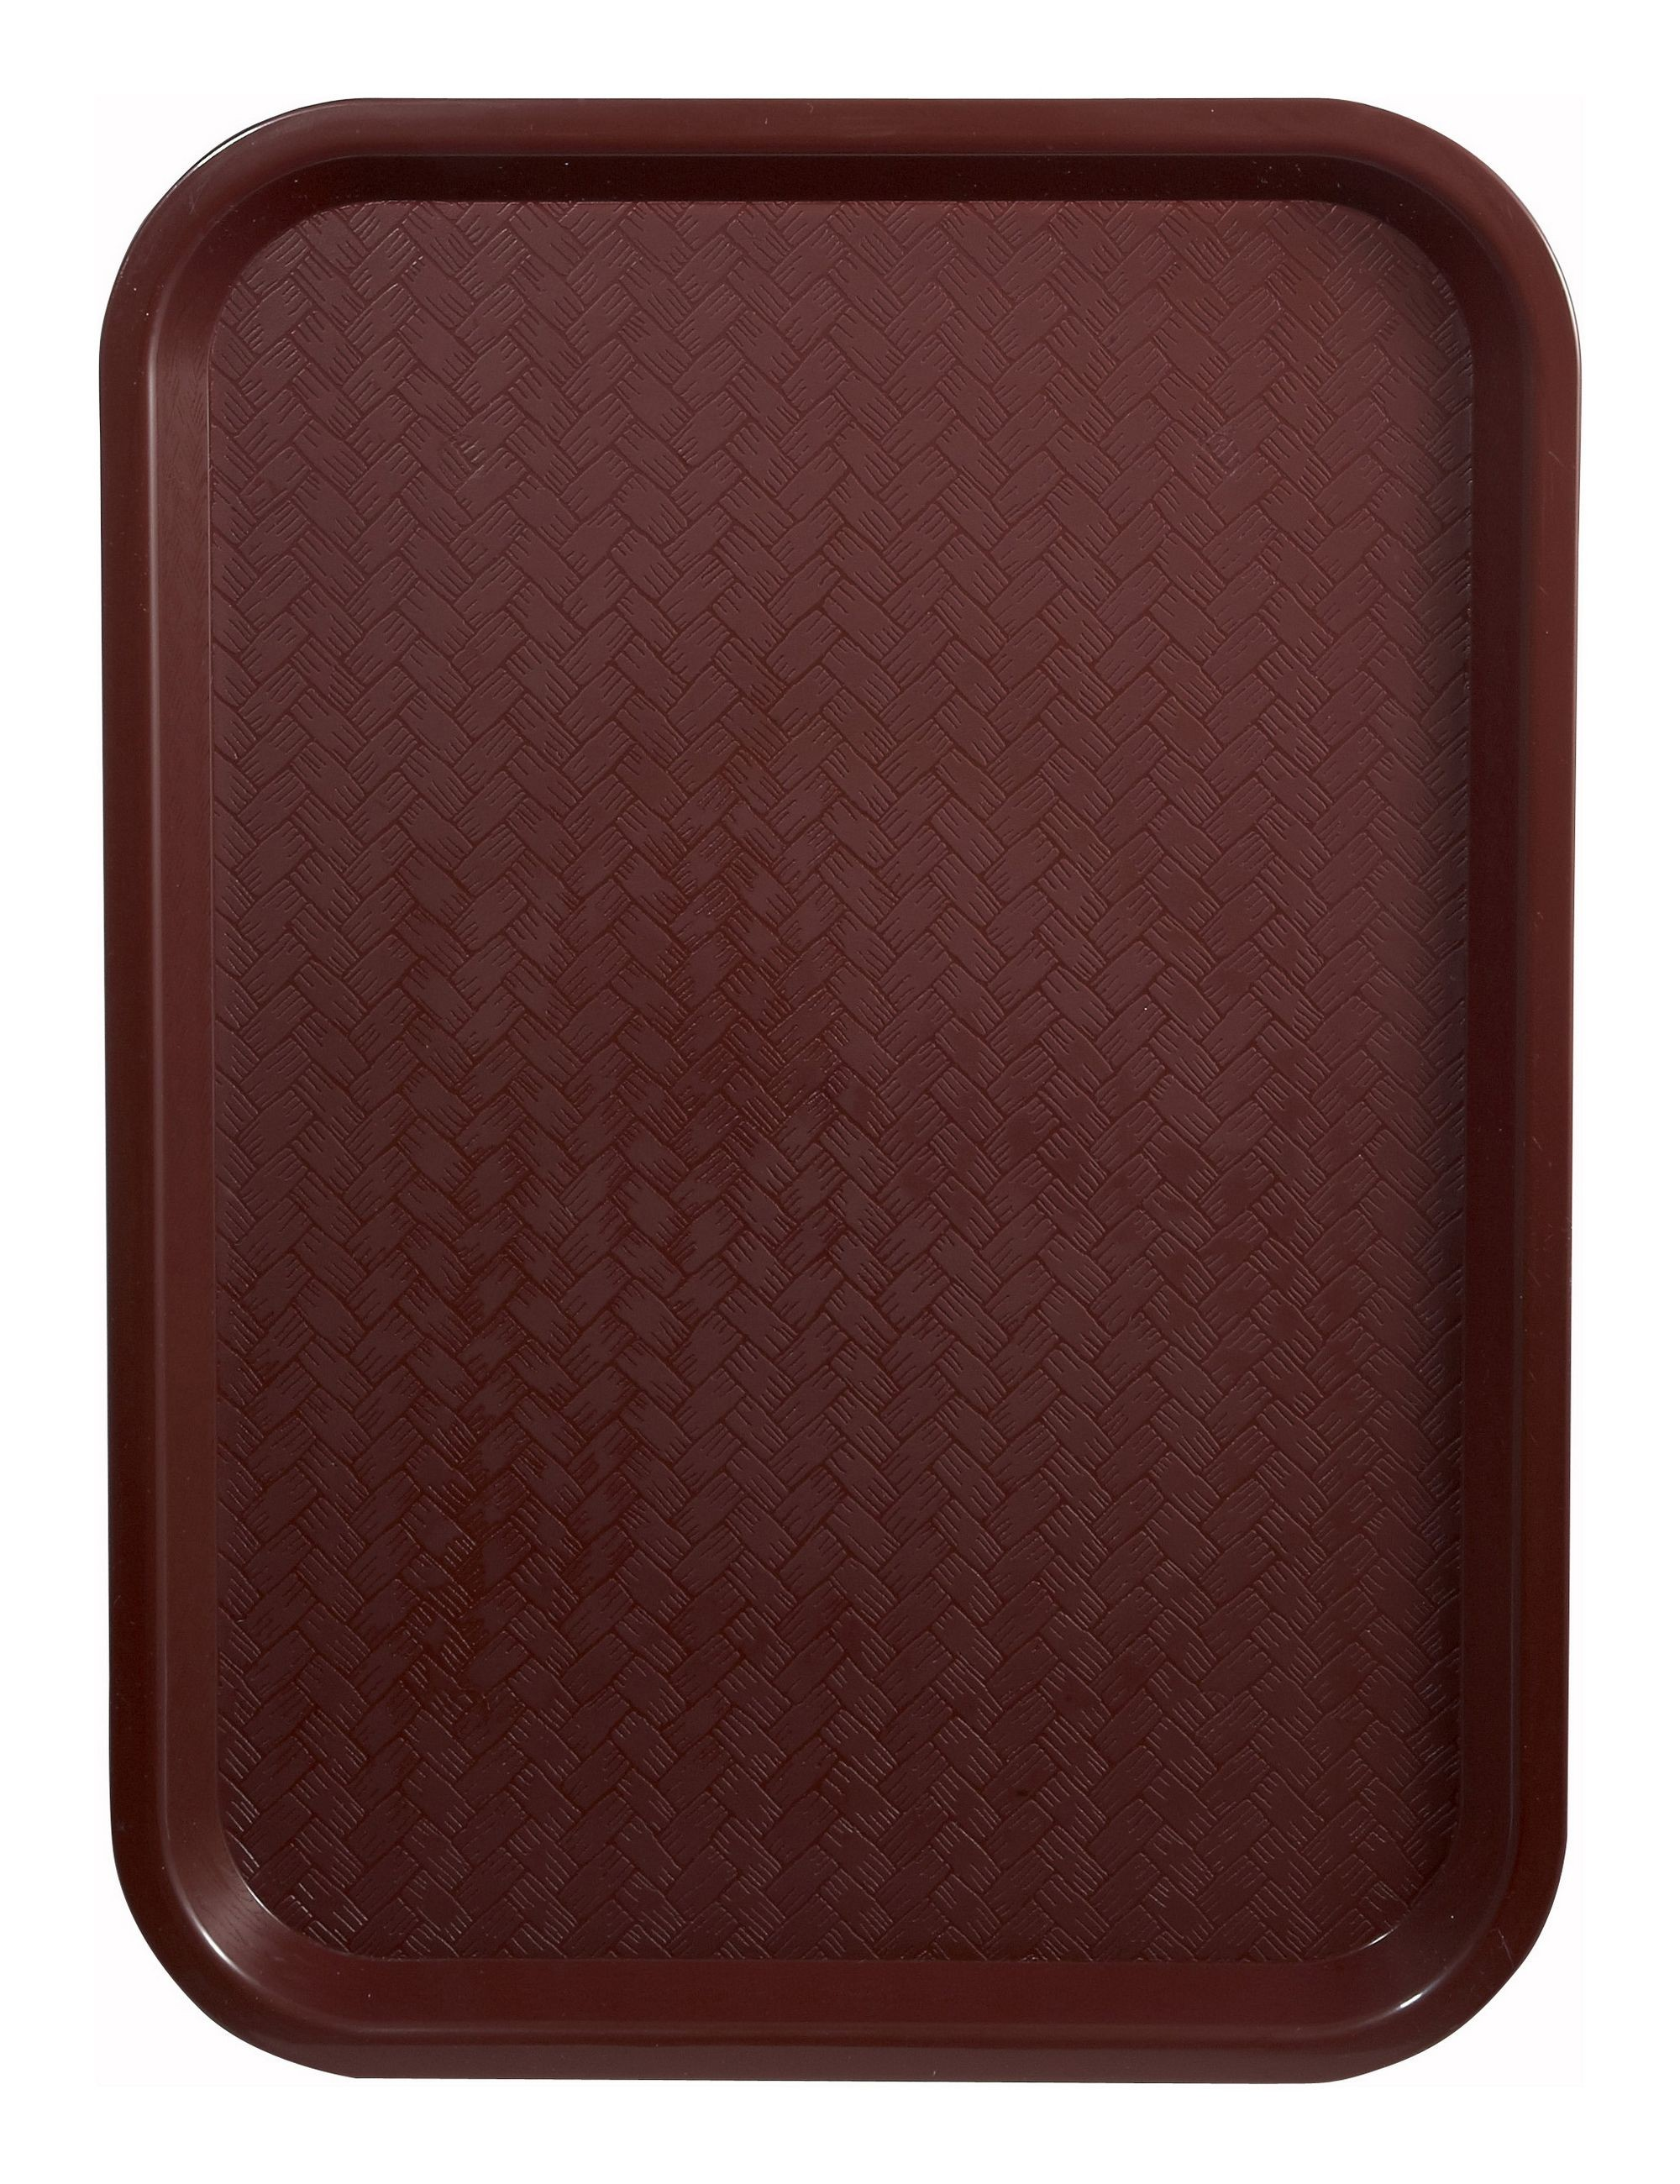 "Winco fft-1014u Burgundy Plastic Fast Food Tray 10"" x 14"""